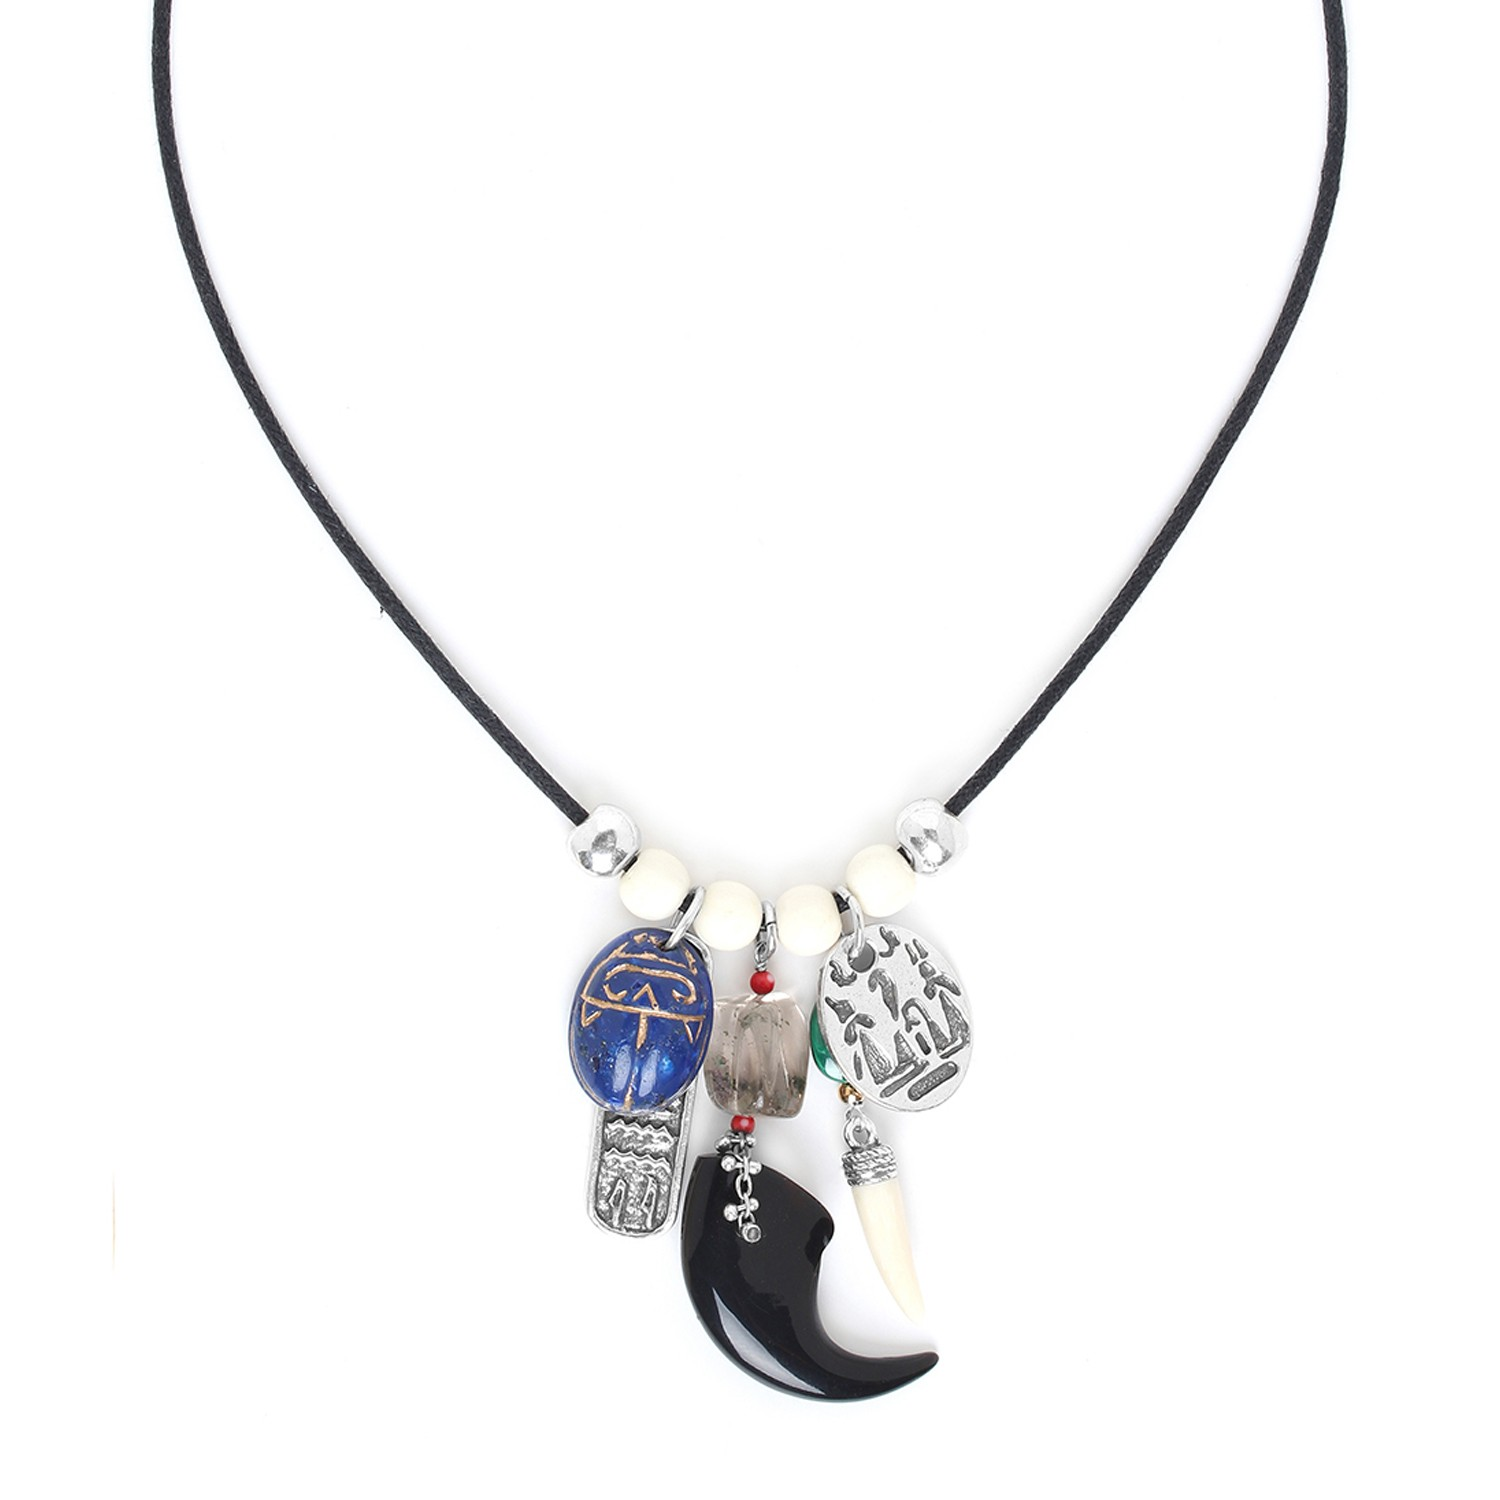 SEKHMET multi dangles necklace